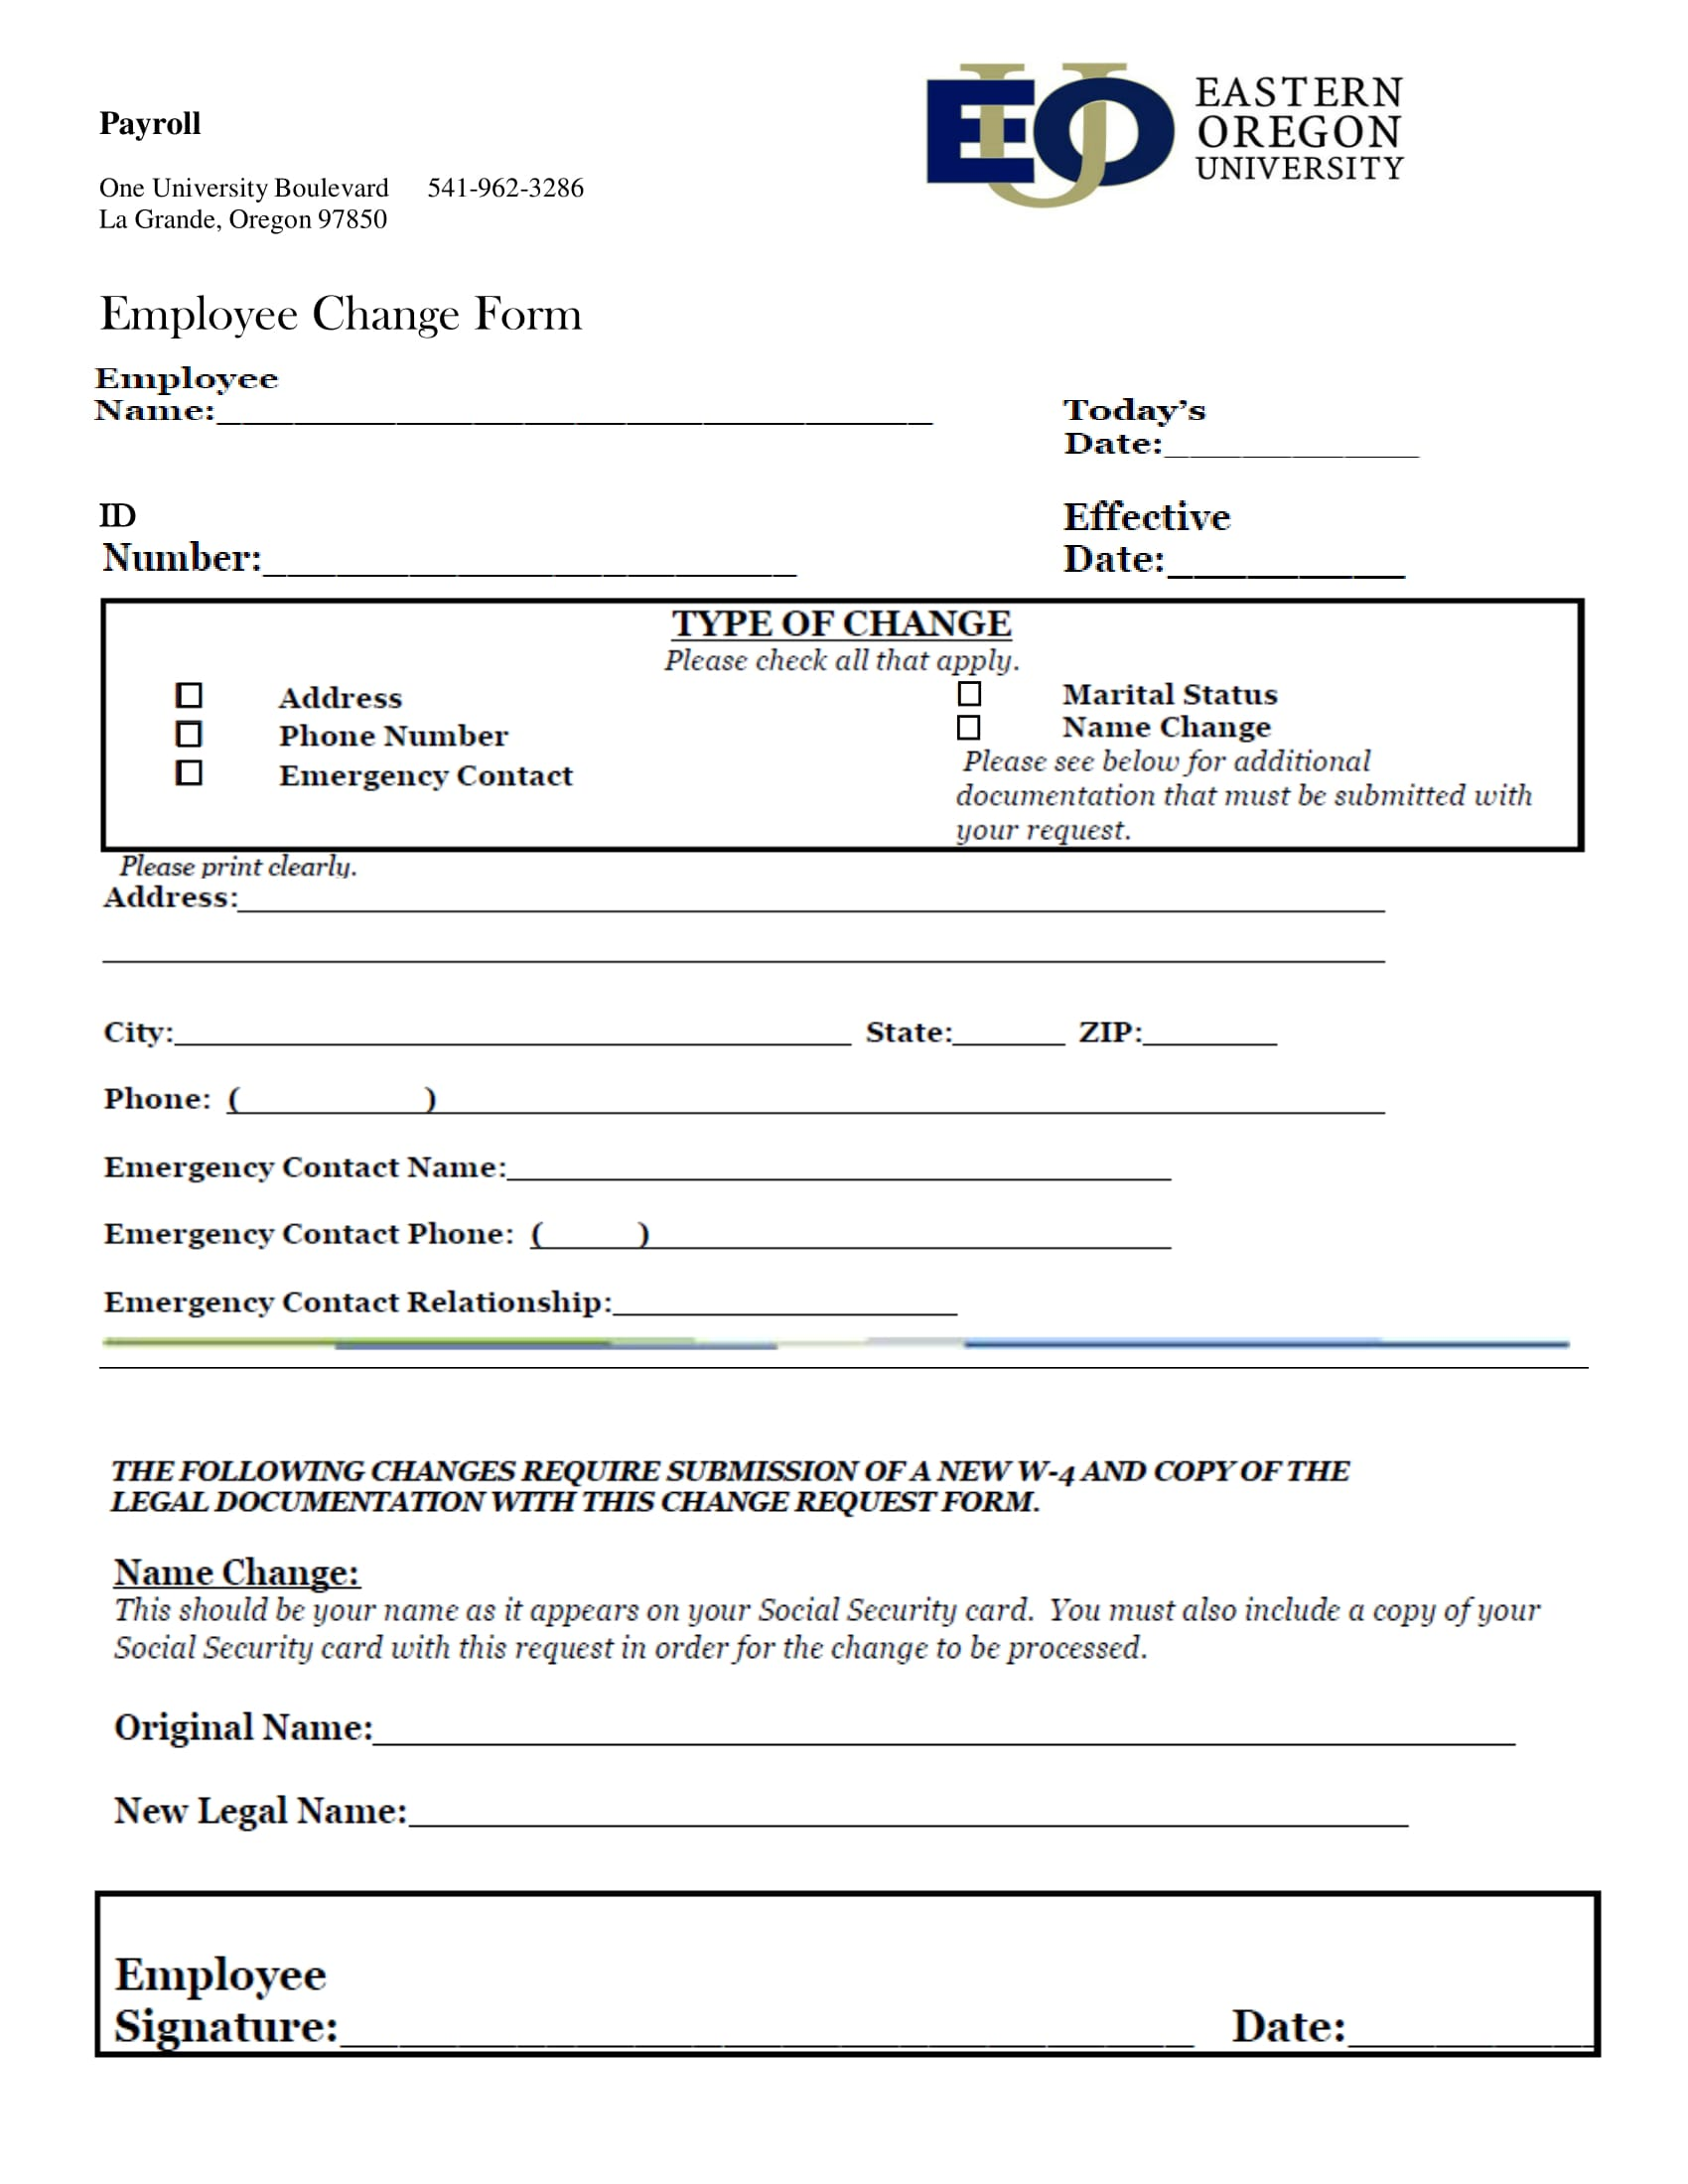 payroll employee change verification form 1